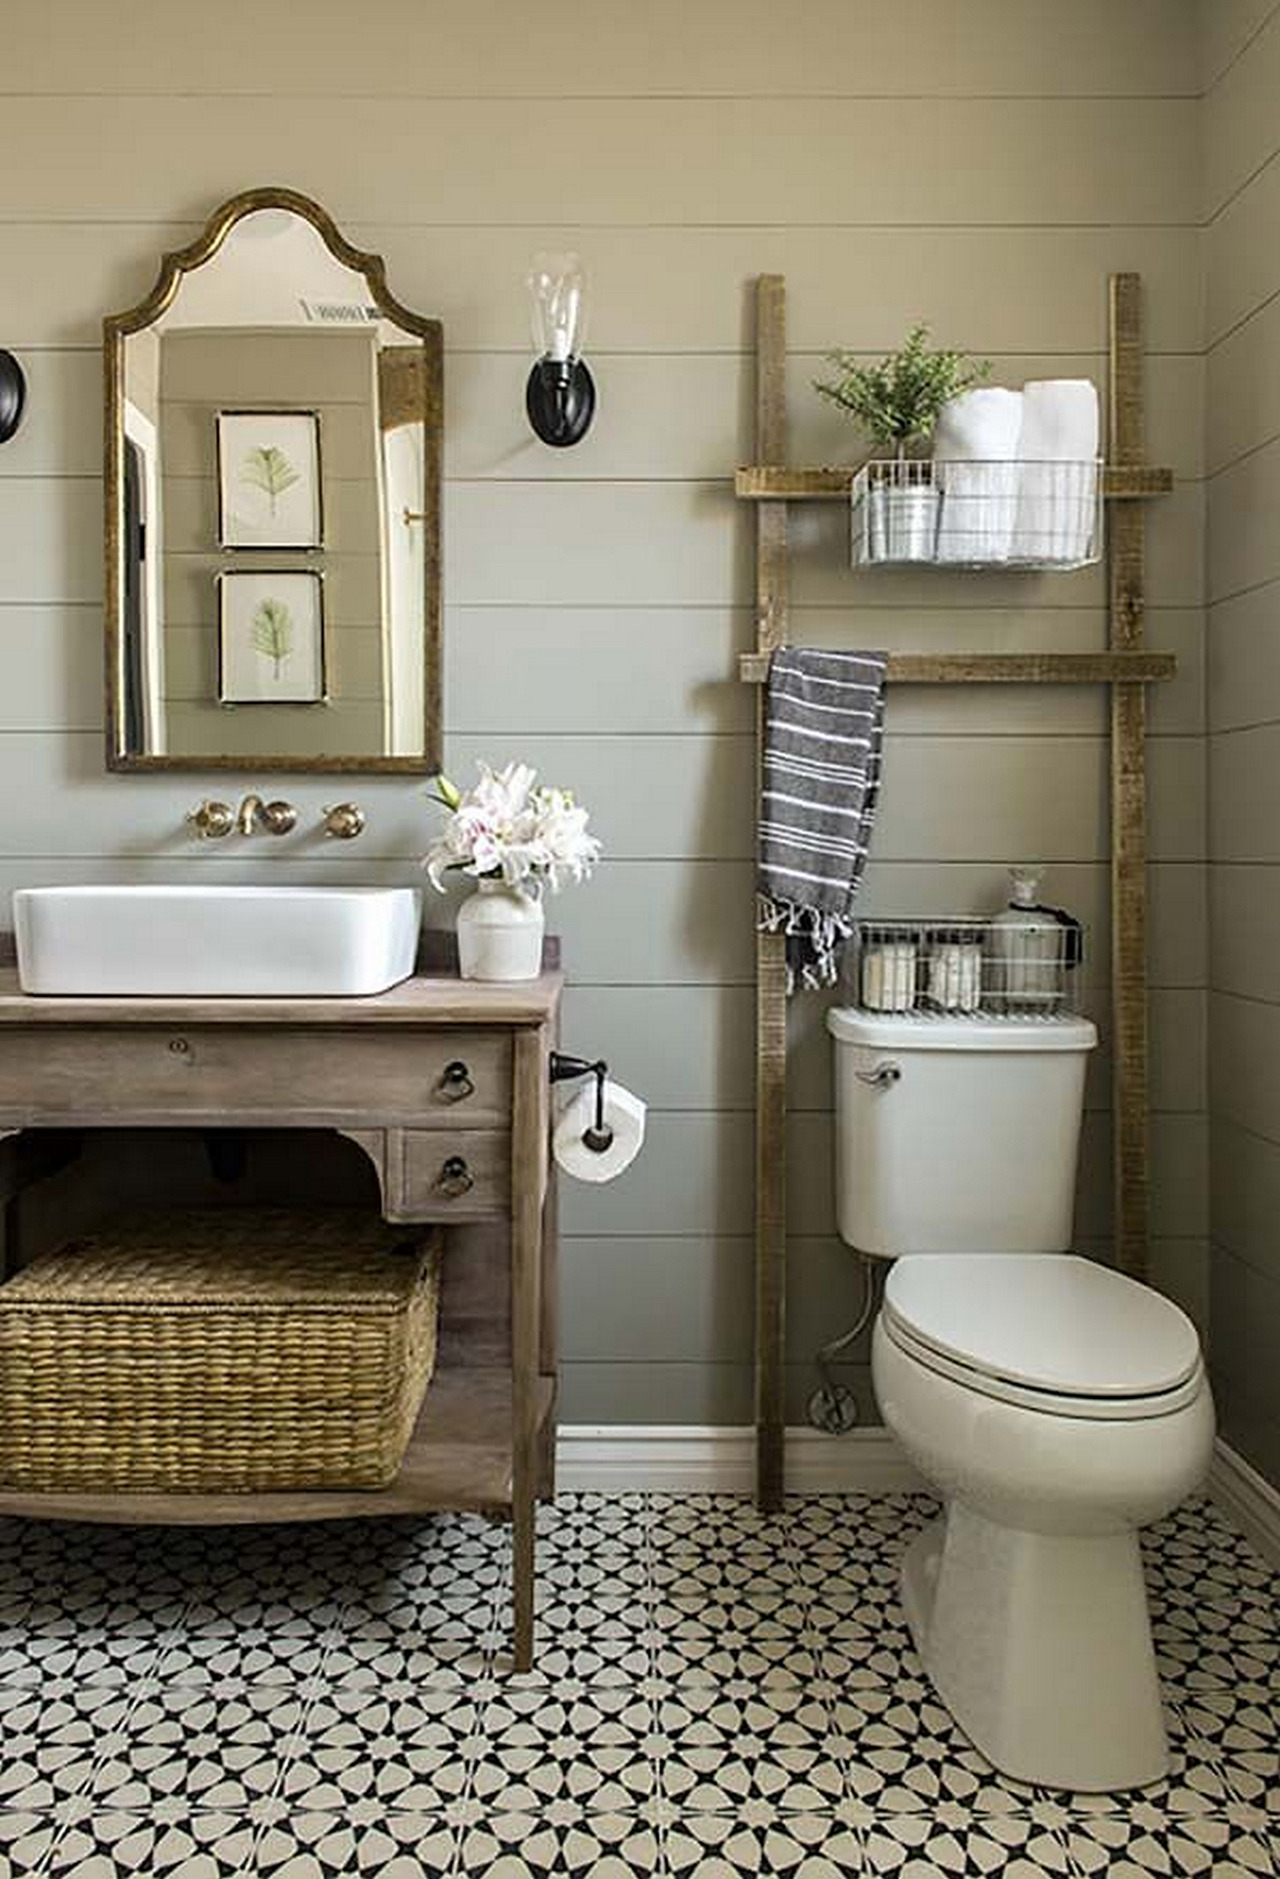 Ideas to Decorate Your Bathroom Unique 25 Best Bathroom Decor Ideas and Designs that are Trendy In 2020